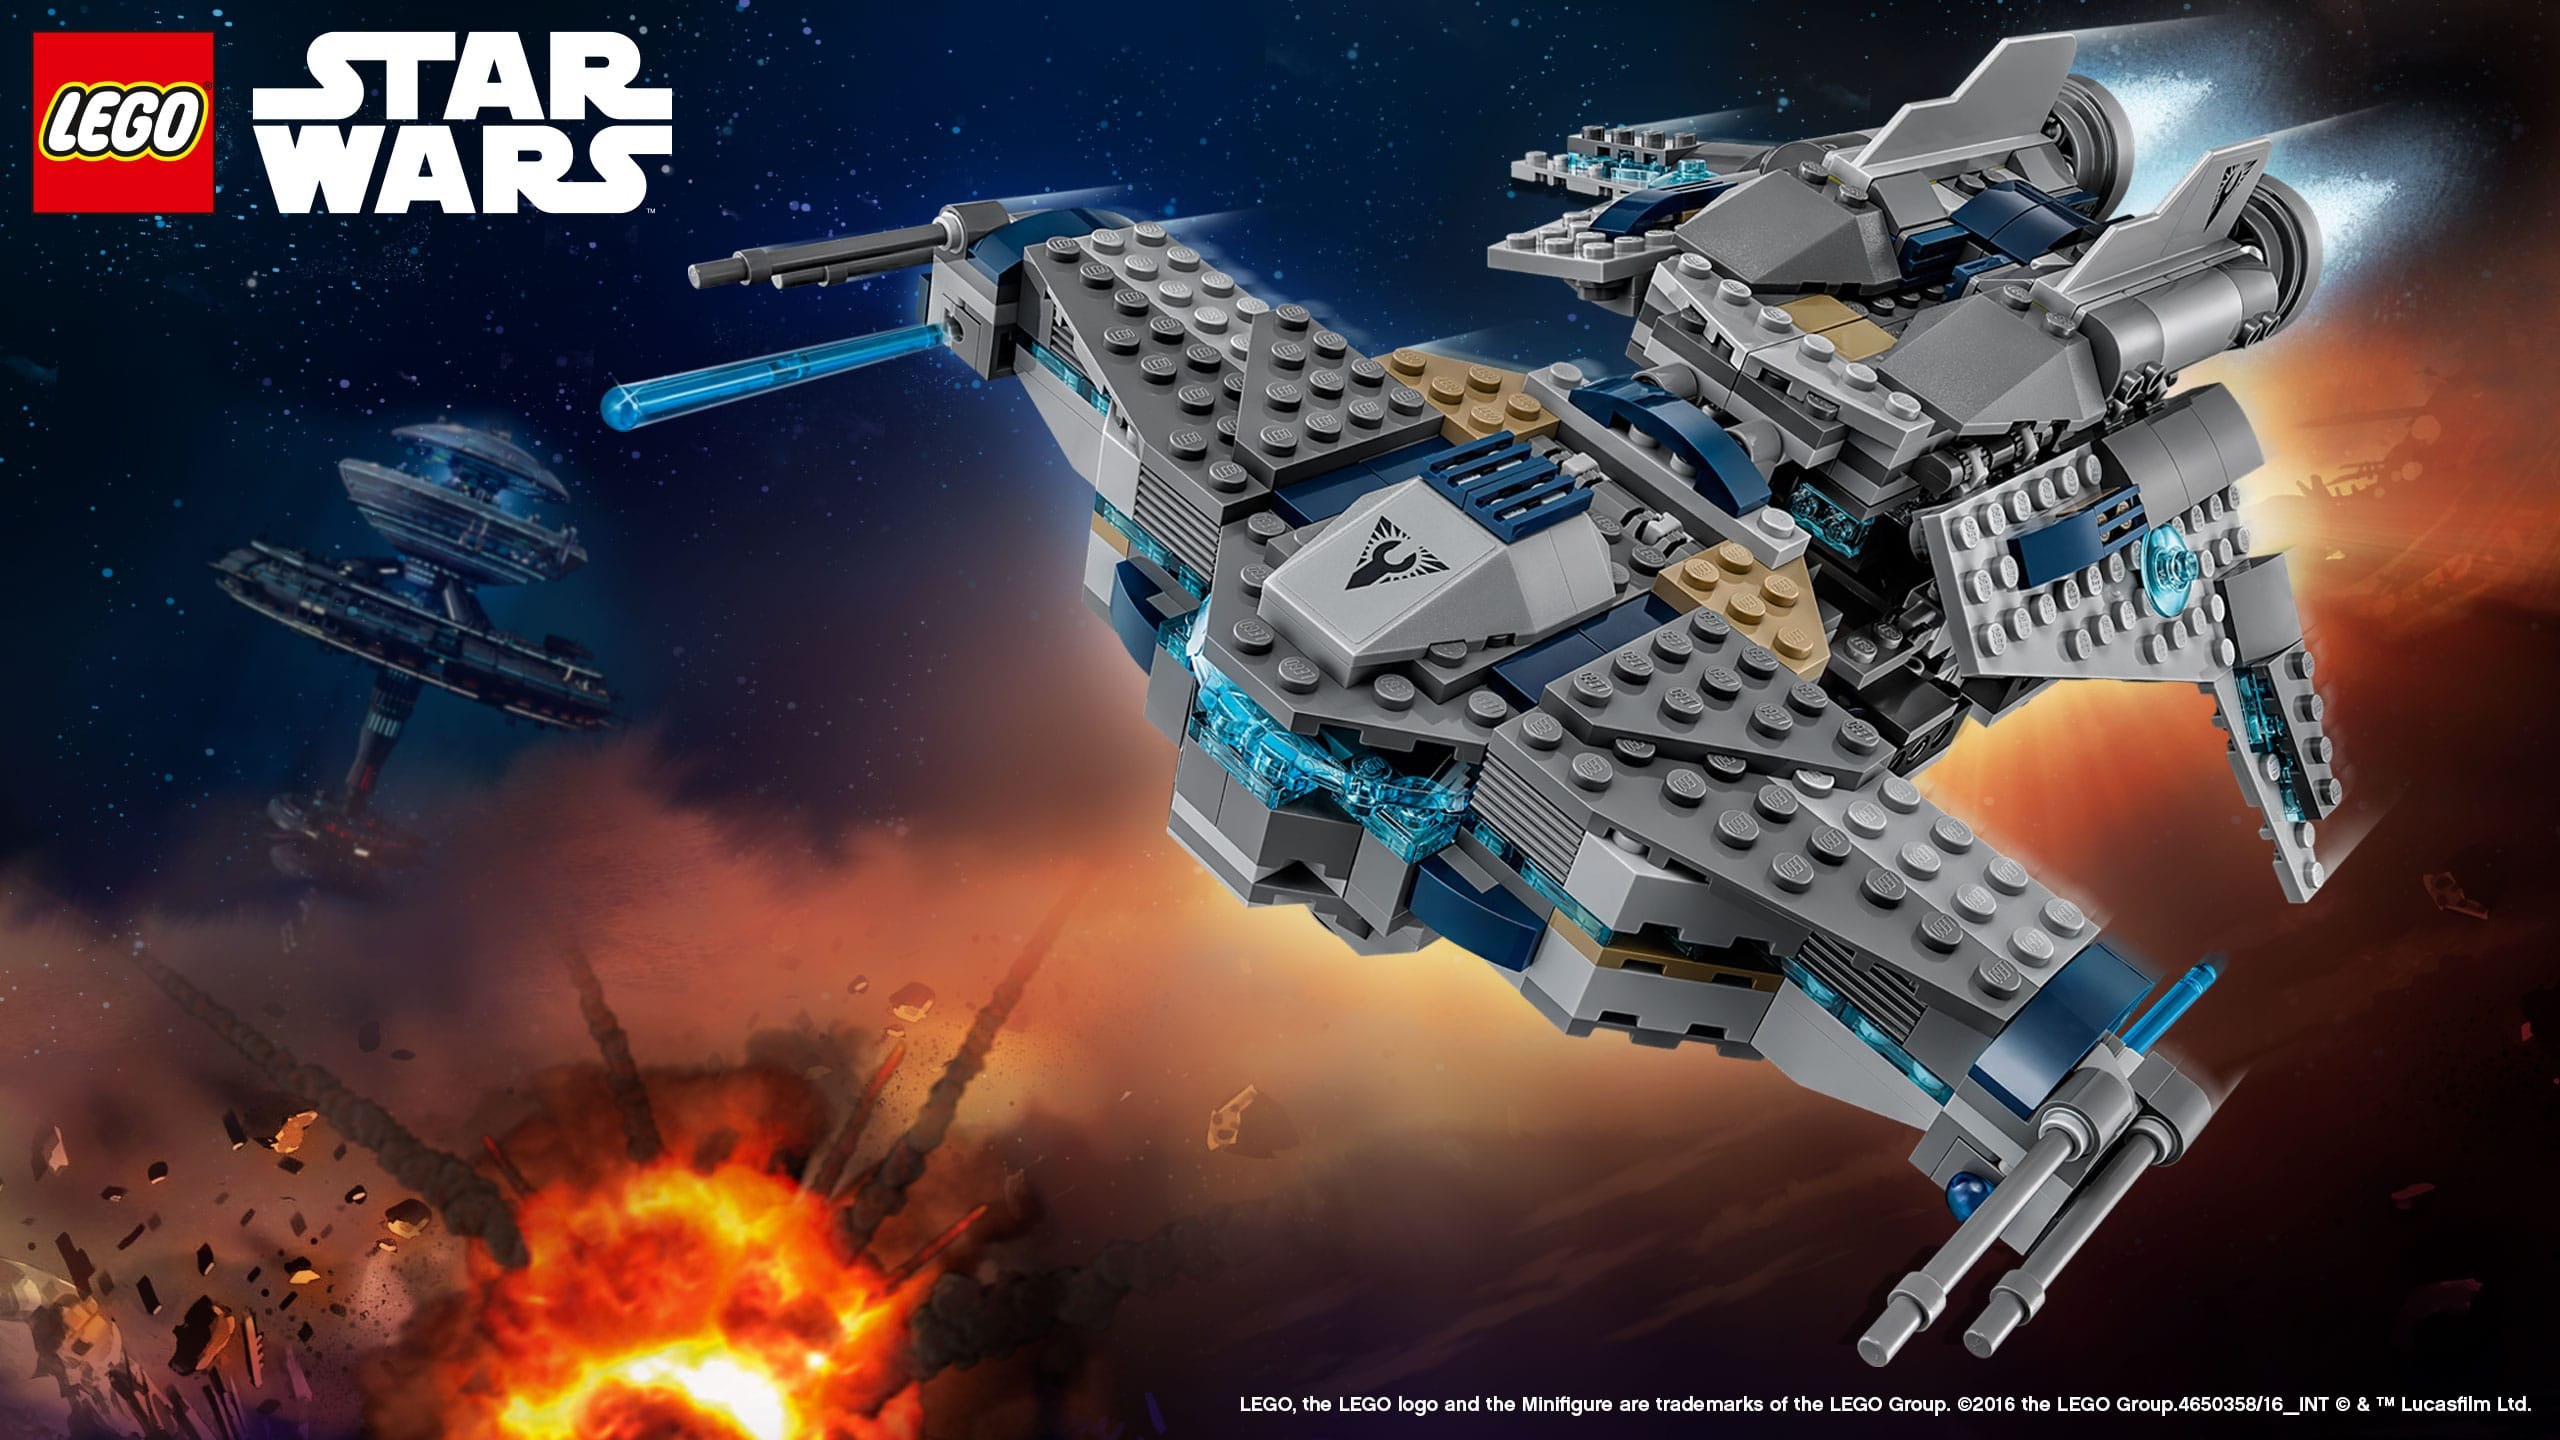 Lego Star Wars The Force Awakens Hd Wallpapers 7wallpapers Net